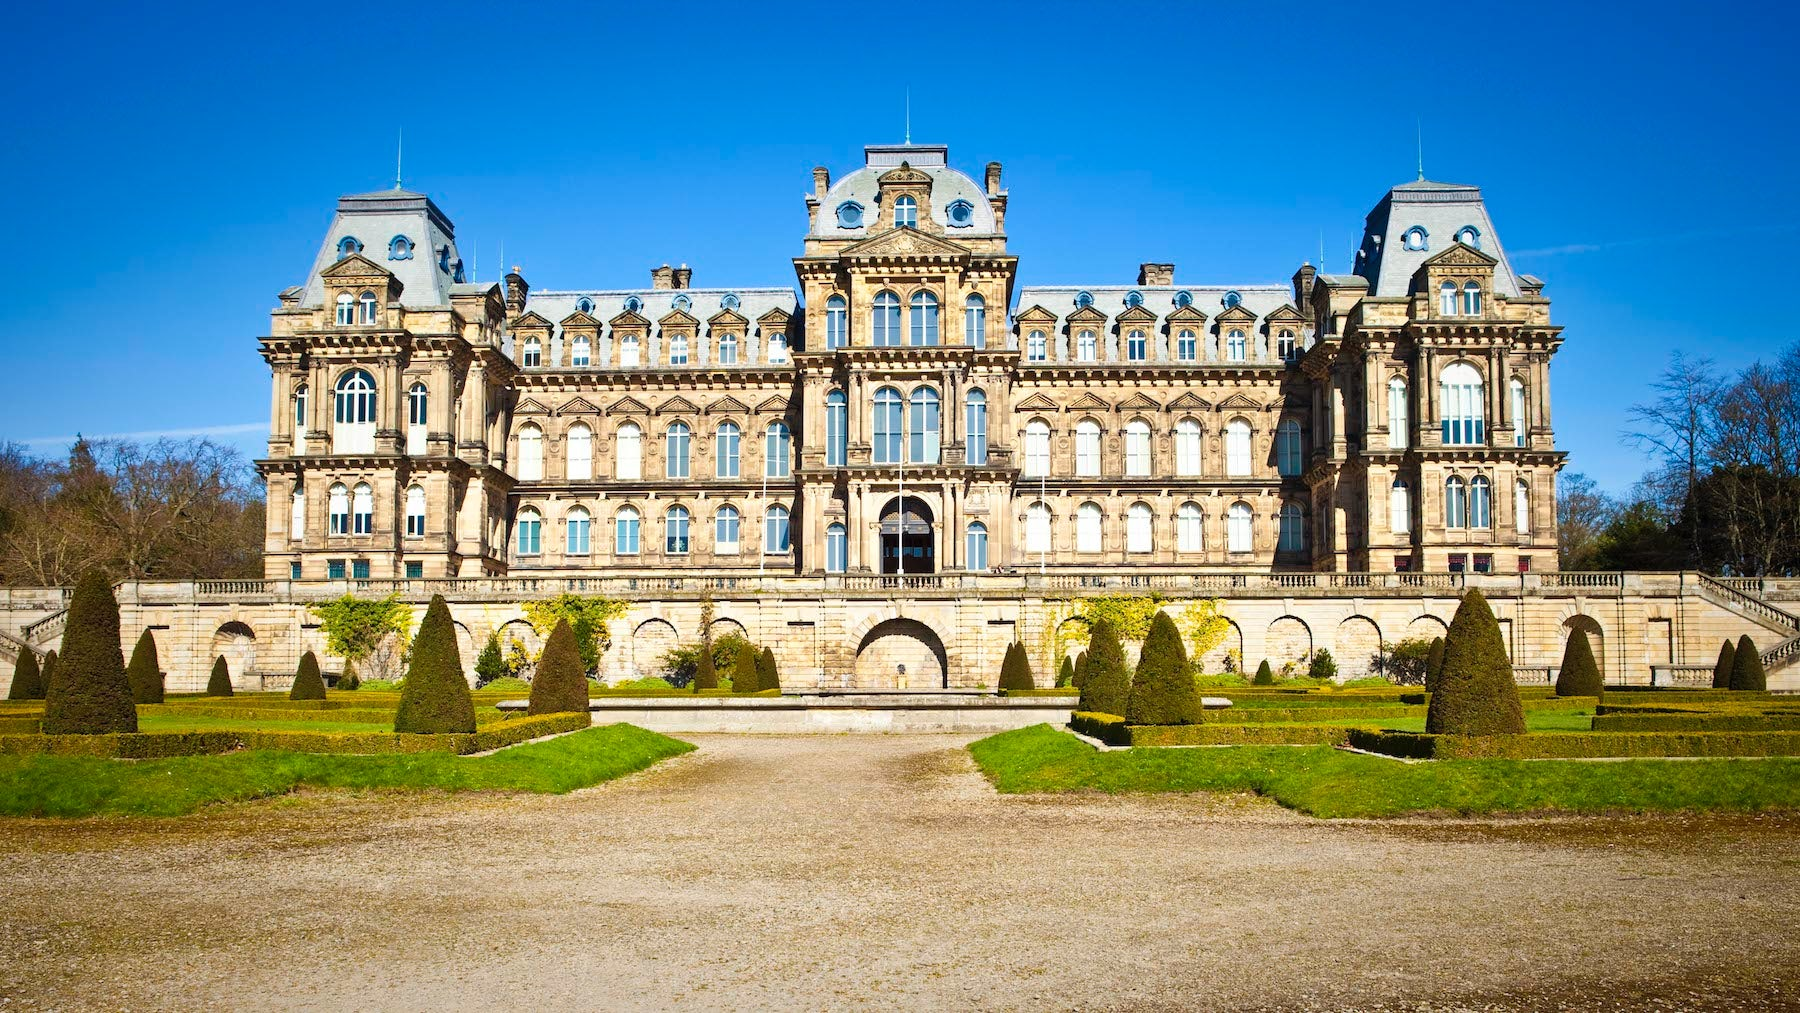 The Bowes Museum | Source: Courtesy